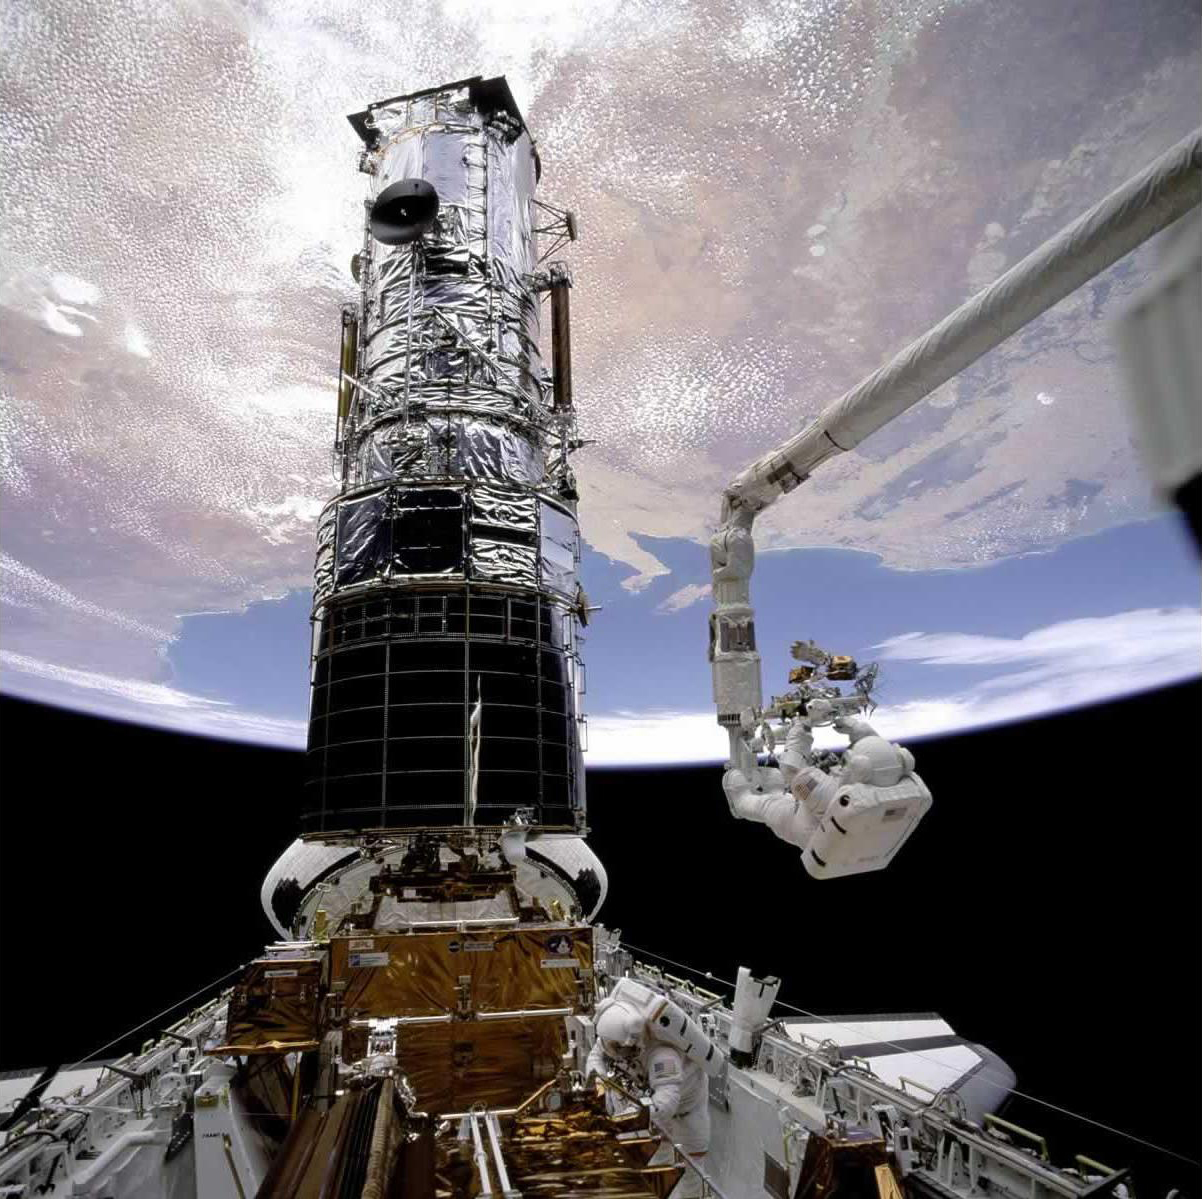 NASA Hubble Space Telescope (625,039 bytes)